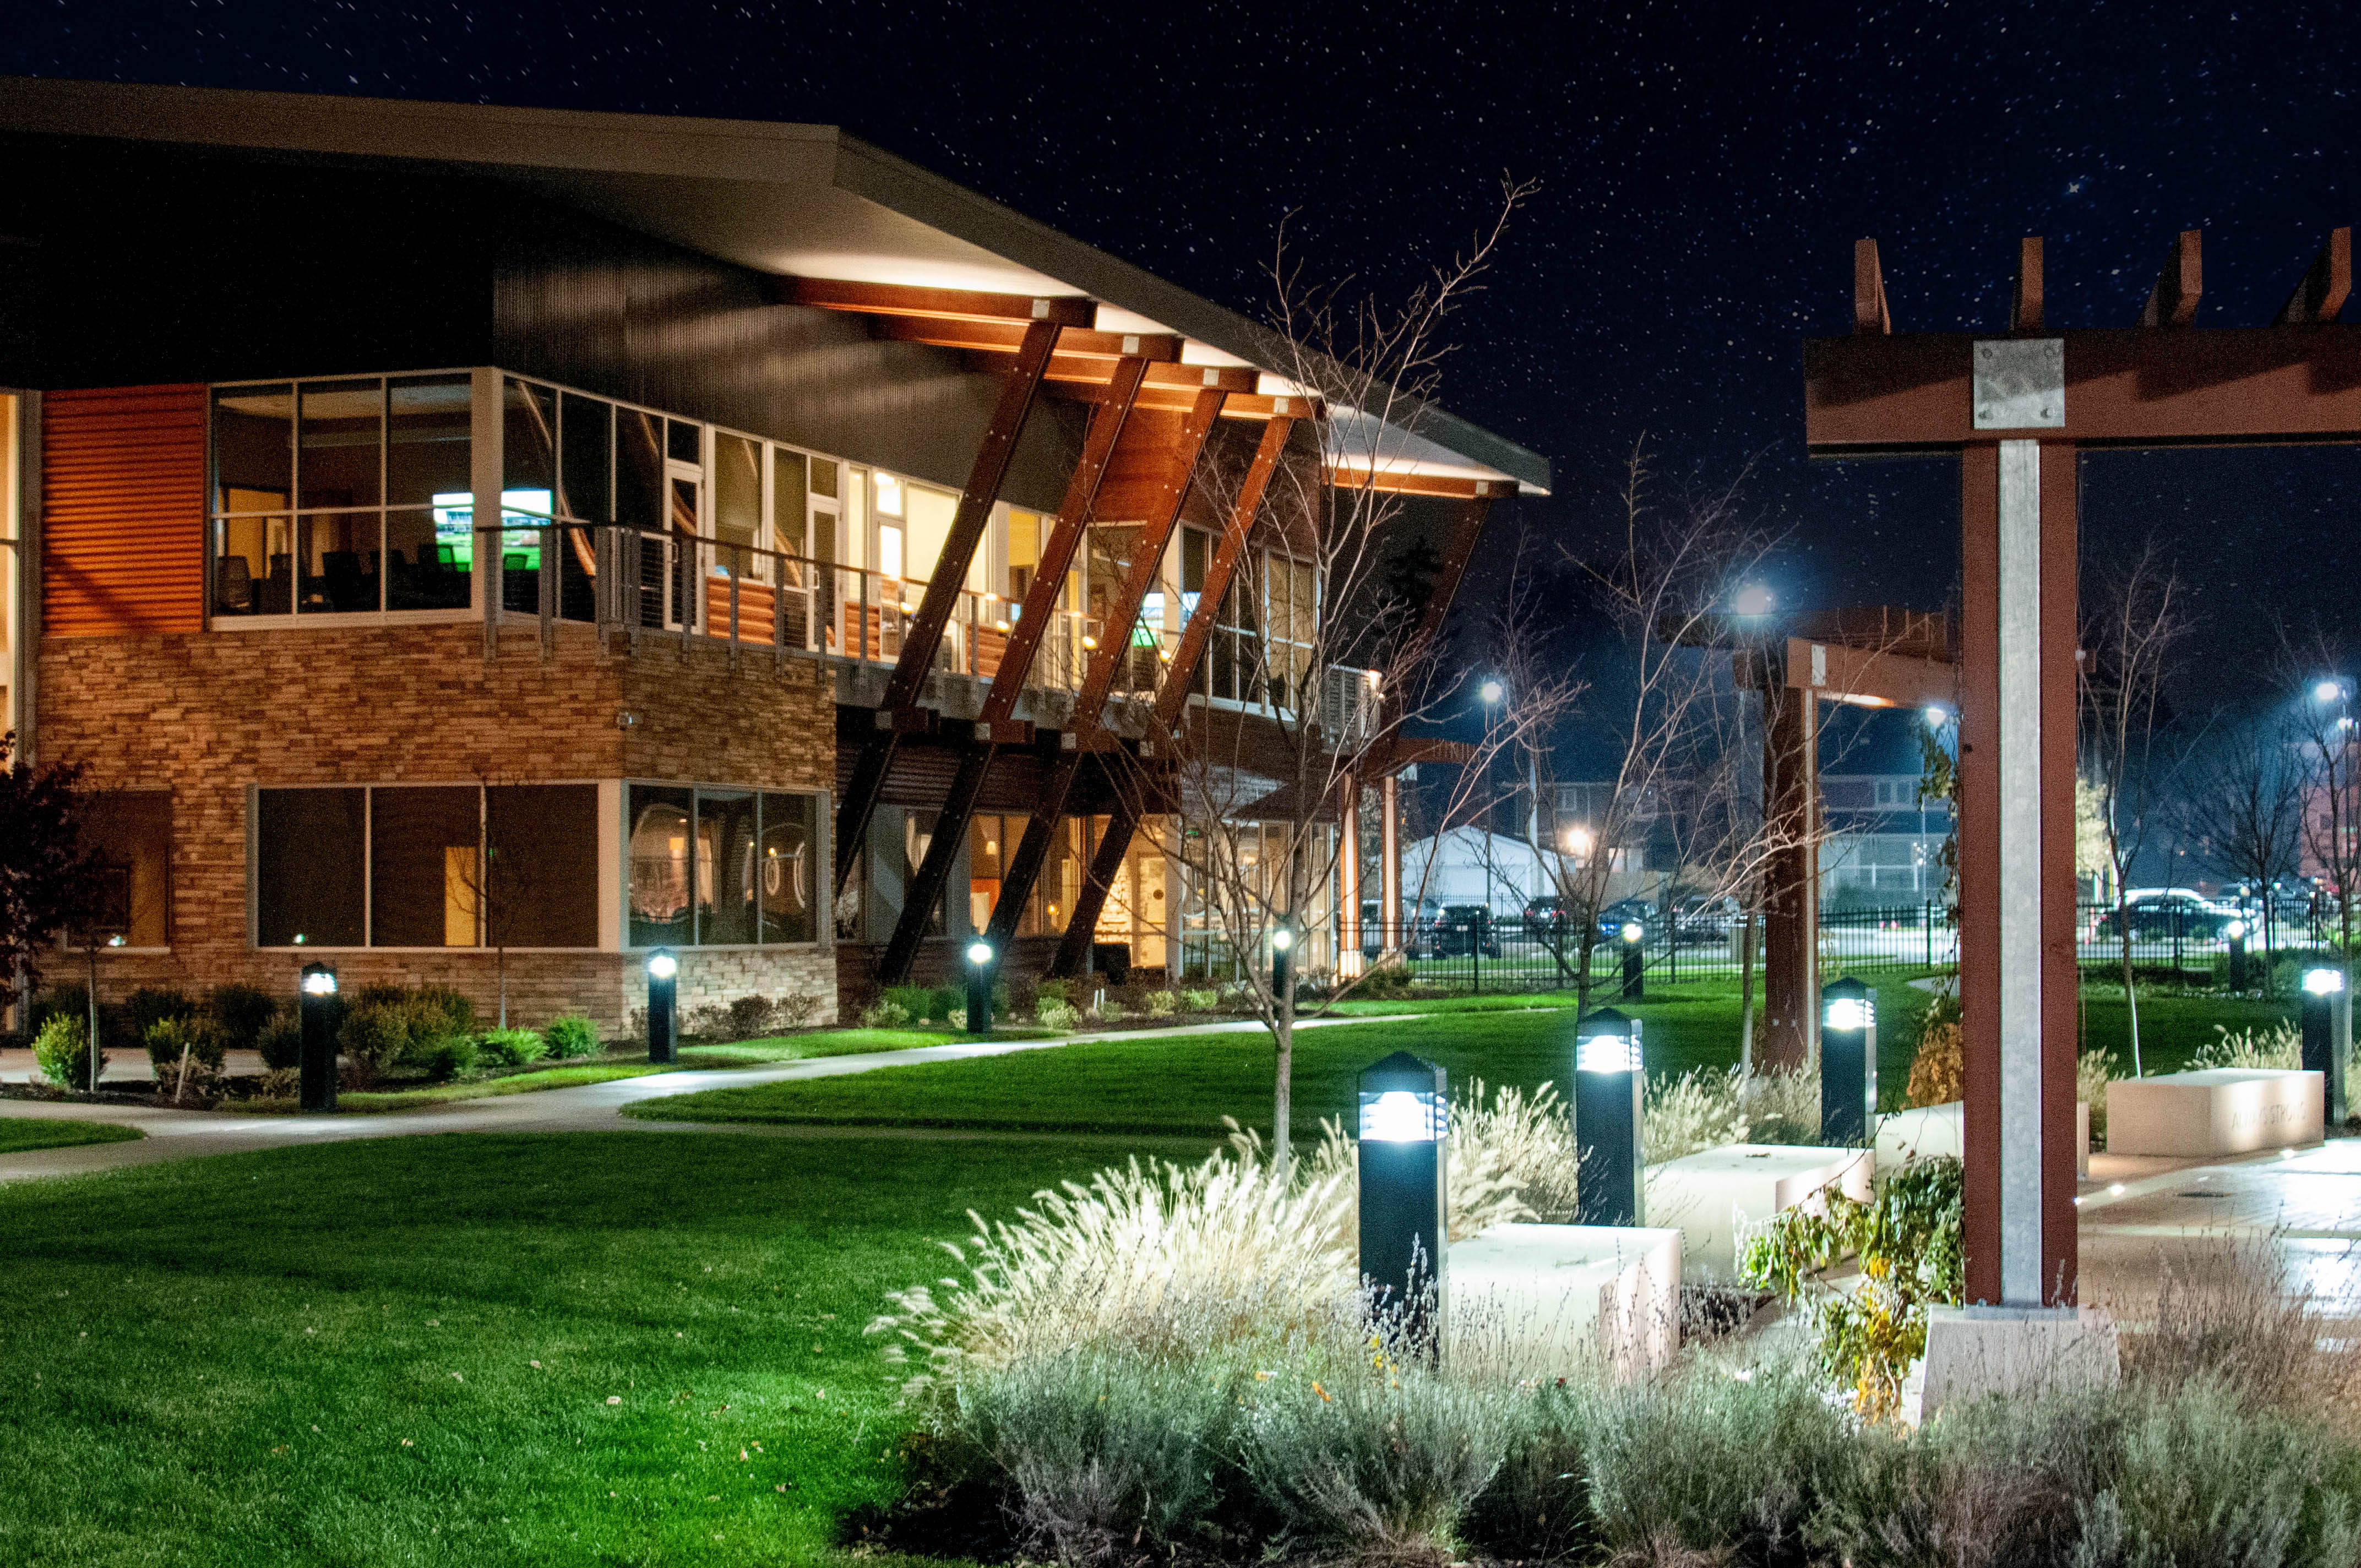 Mishawaka Indiana Center for Hospice at night looking into their garden area.